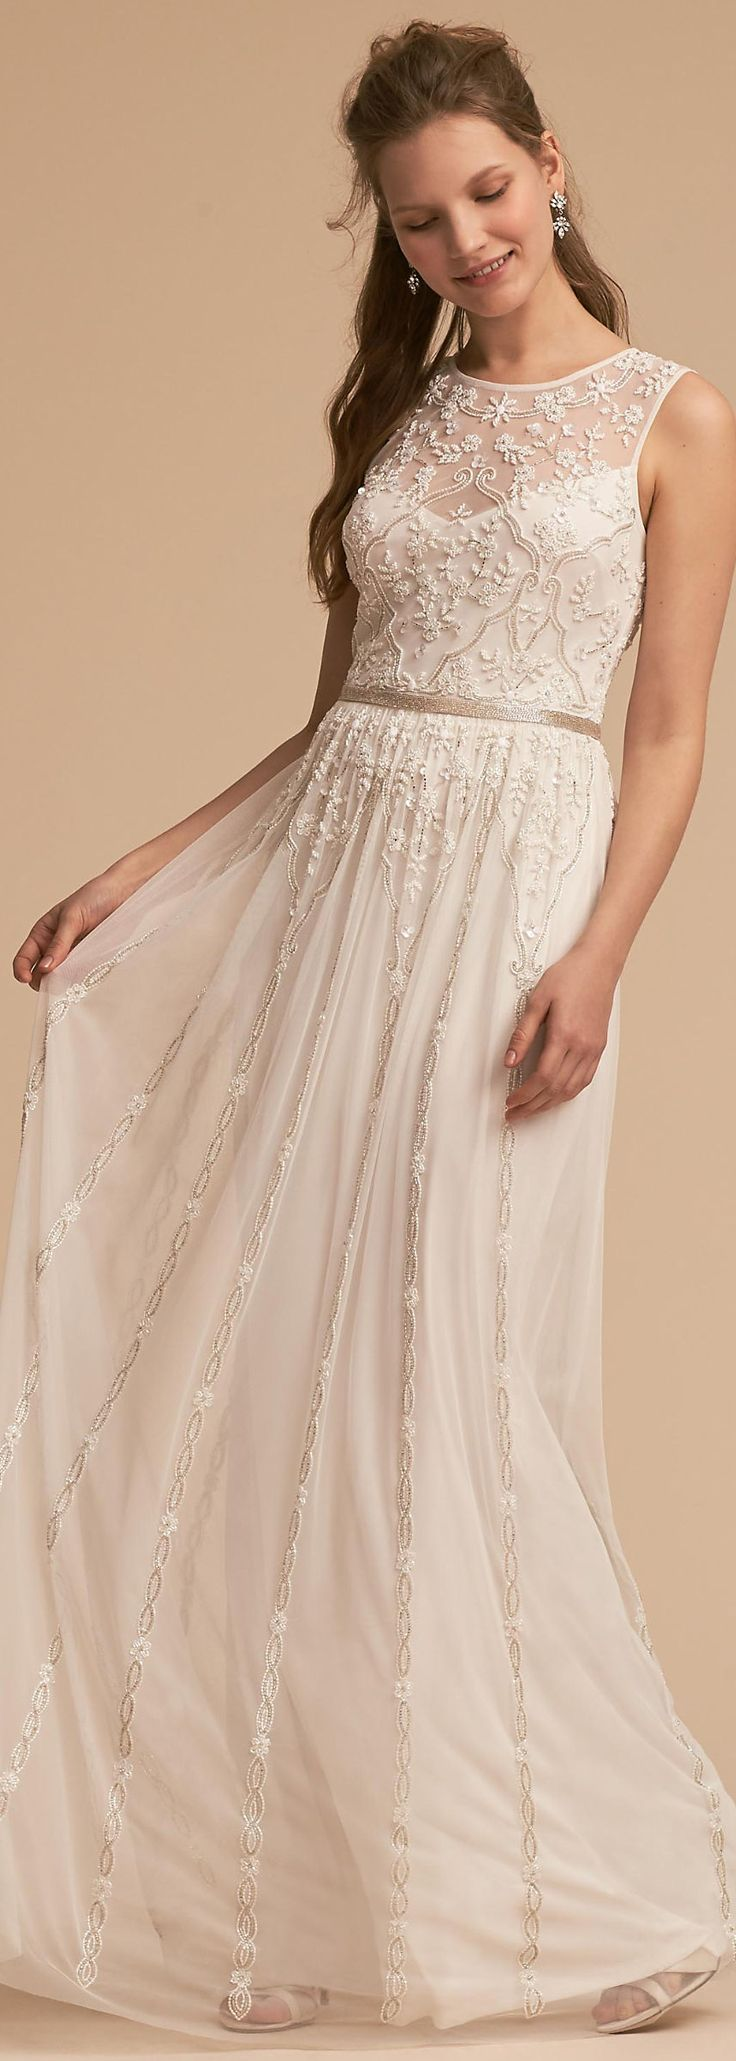 This chiffon maxi bridal gown features a highneck illusion